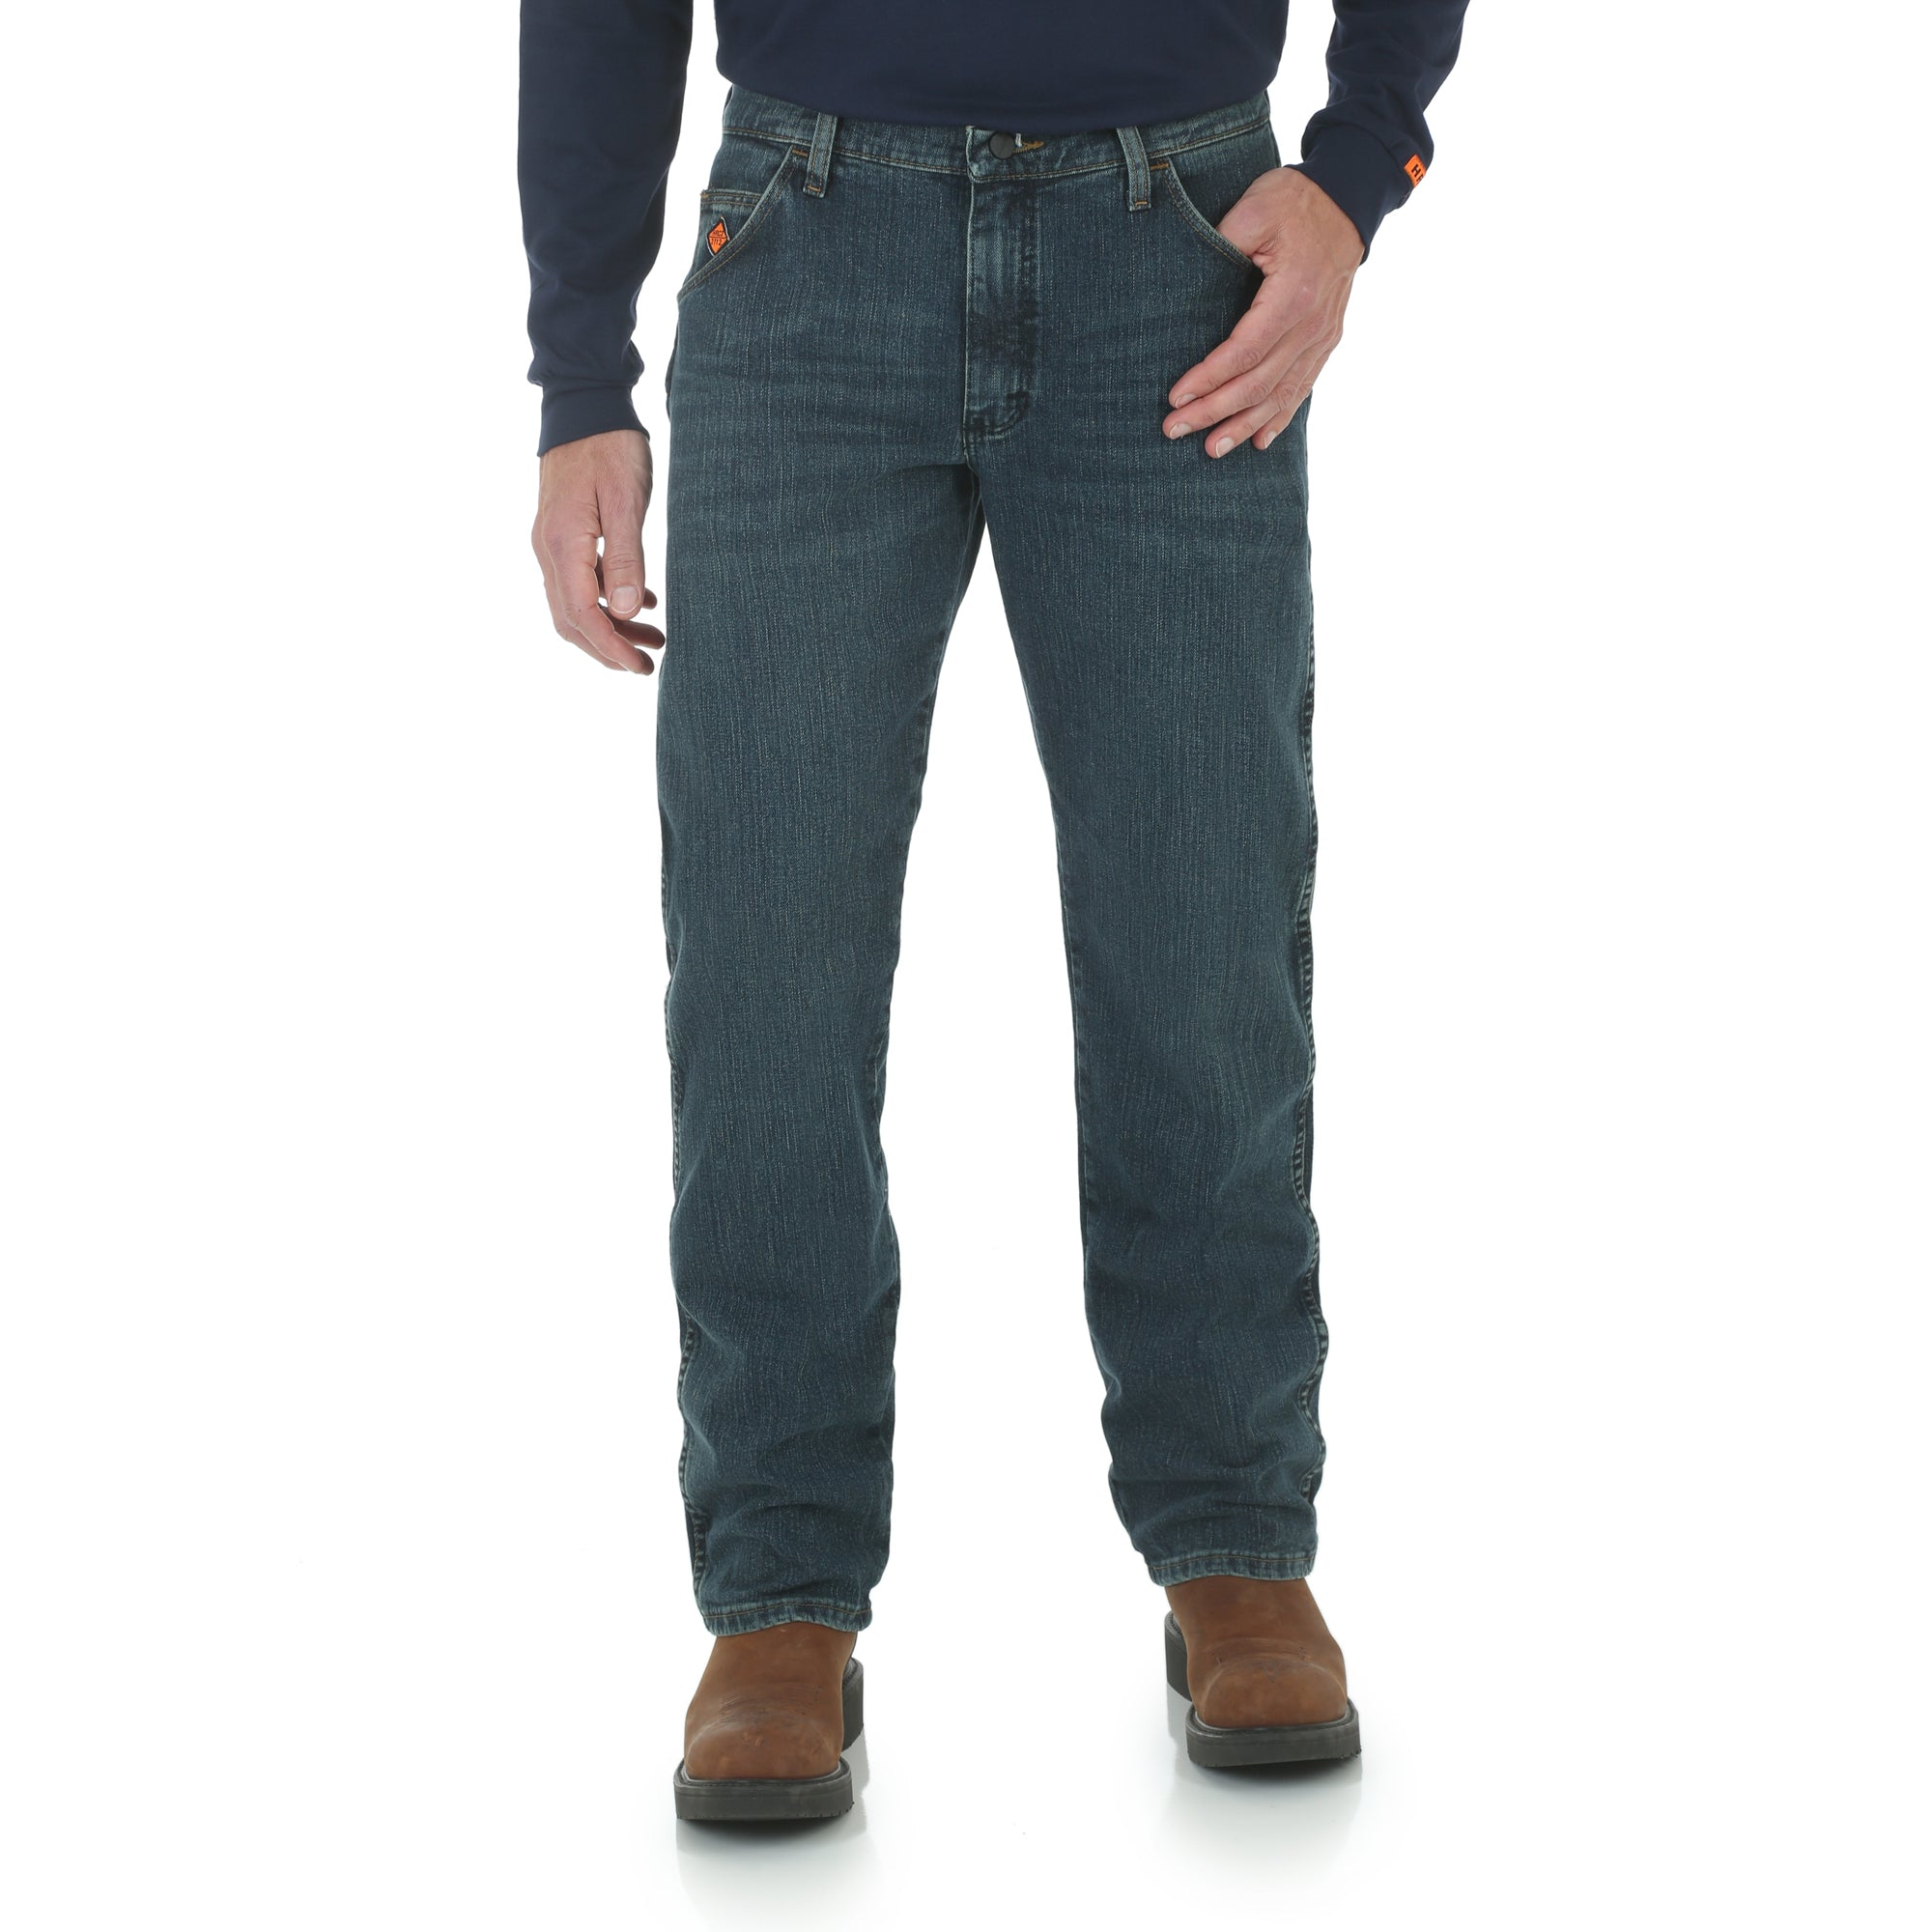 Wrangler FR 30 X 38 Dark Tint Cotton Polyester Spandex Flame Resistant Jeans With Zipper Front Closure